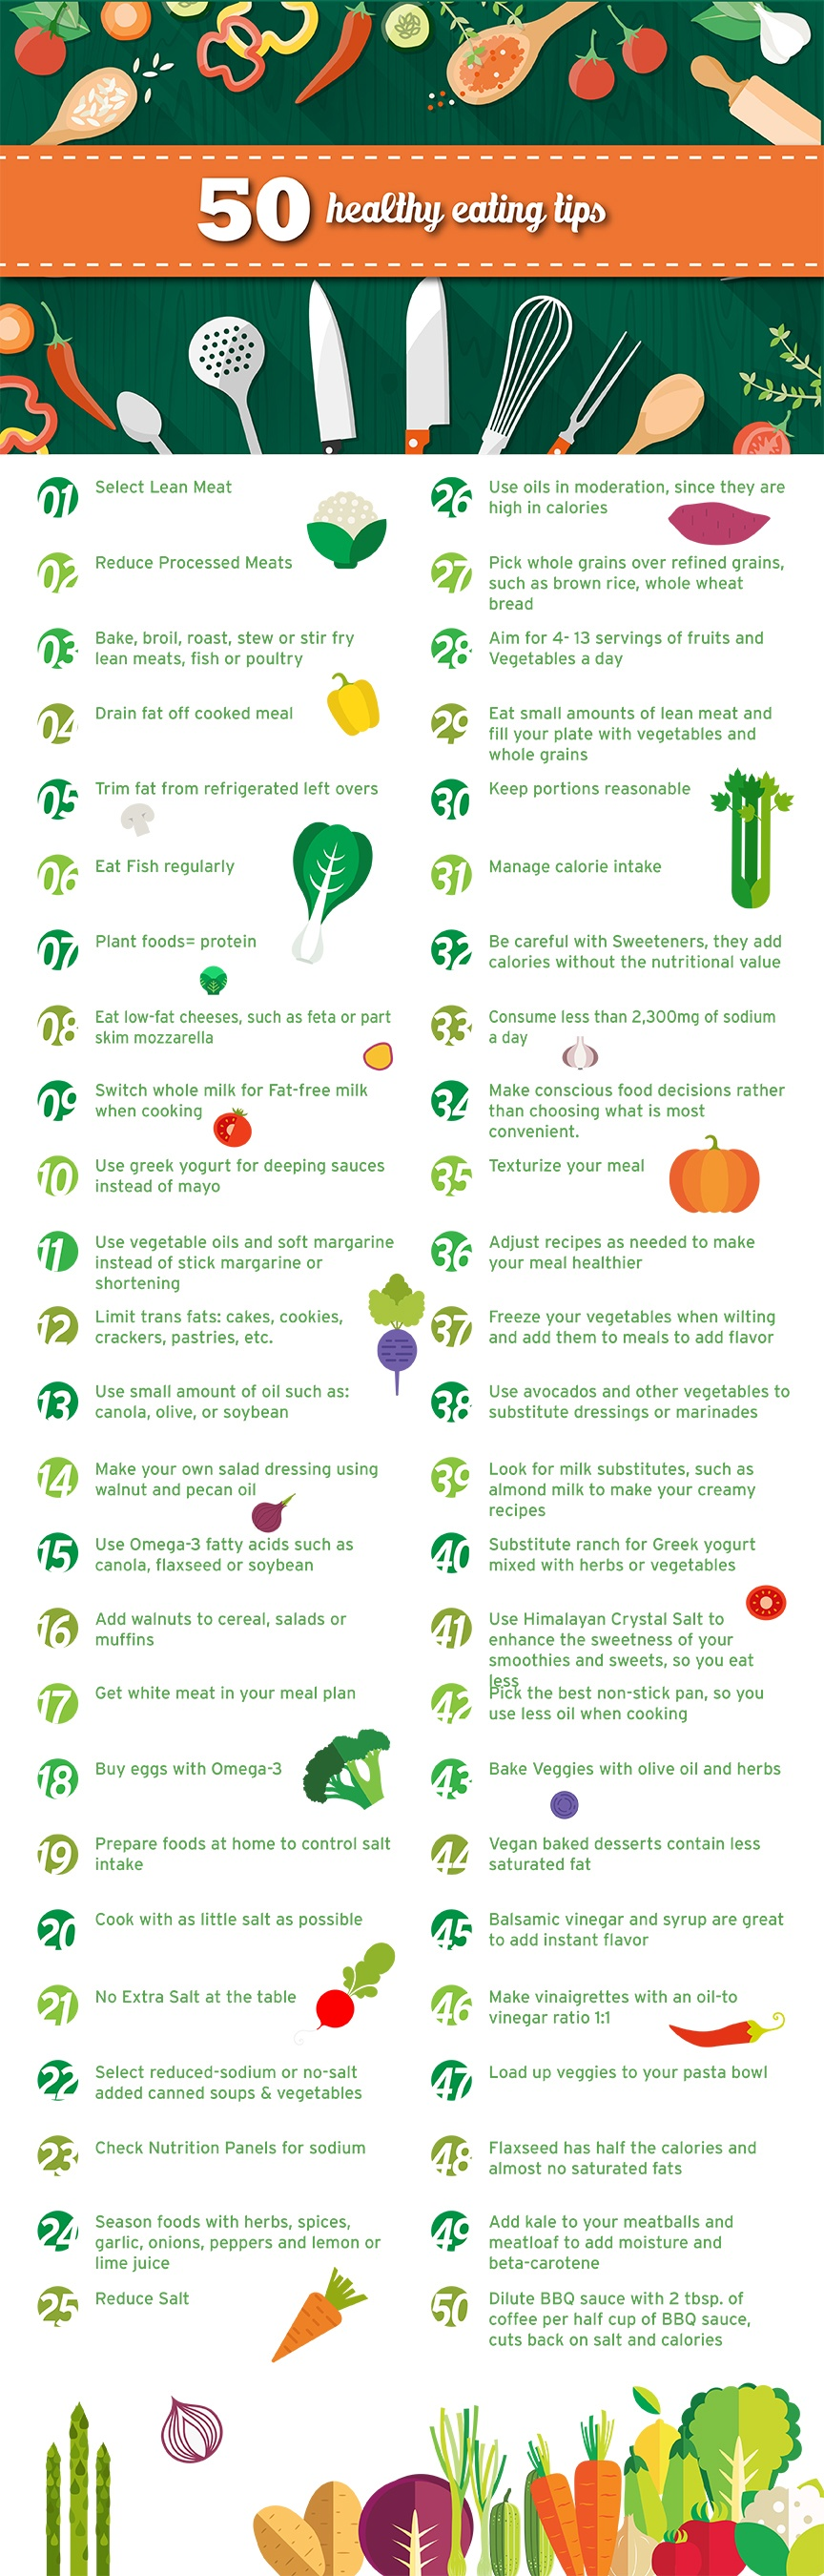 50 Kitchen and Cooking Tips for Your Heart